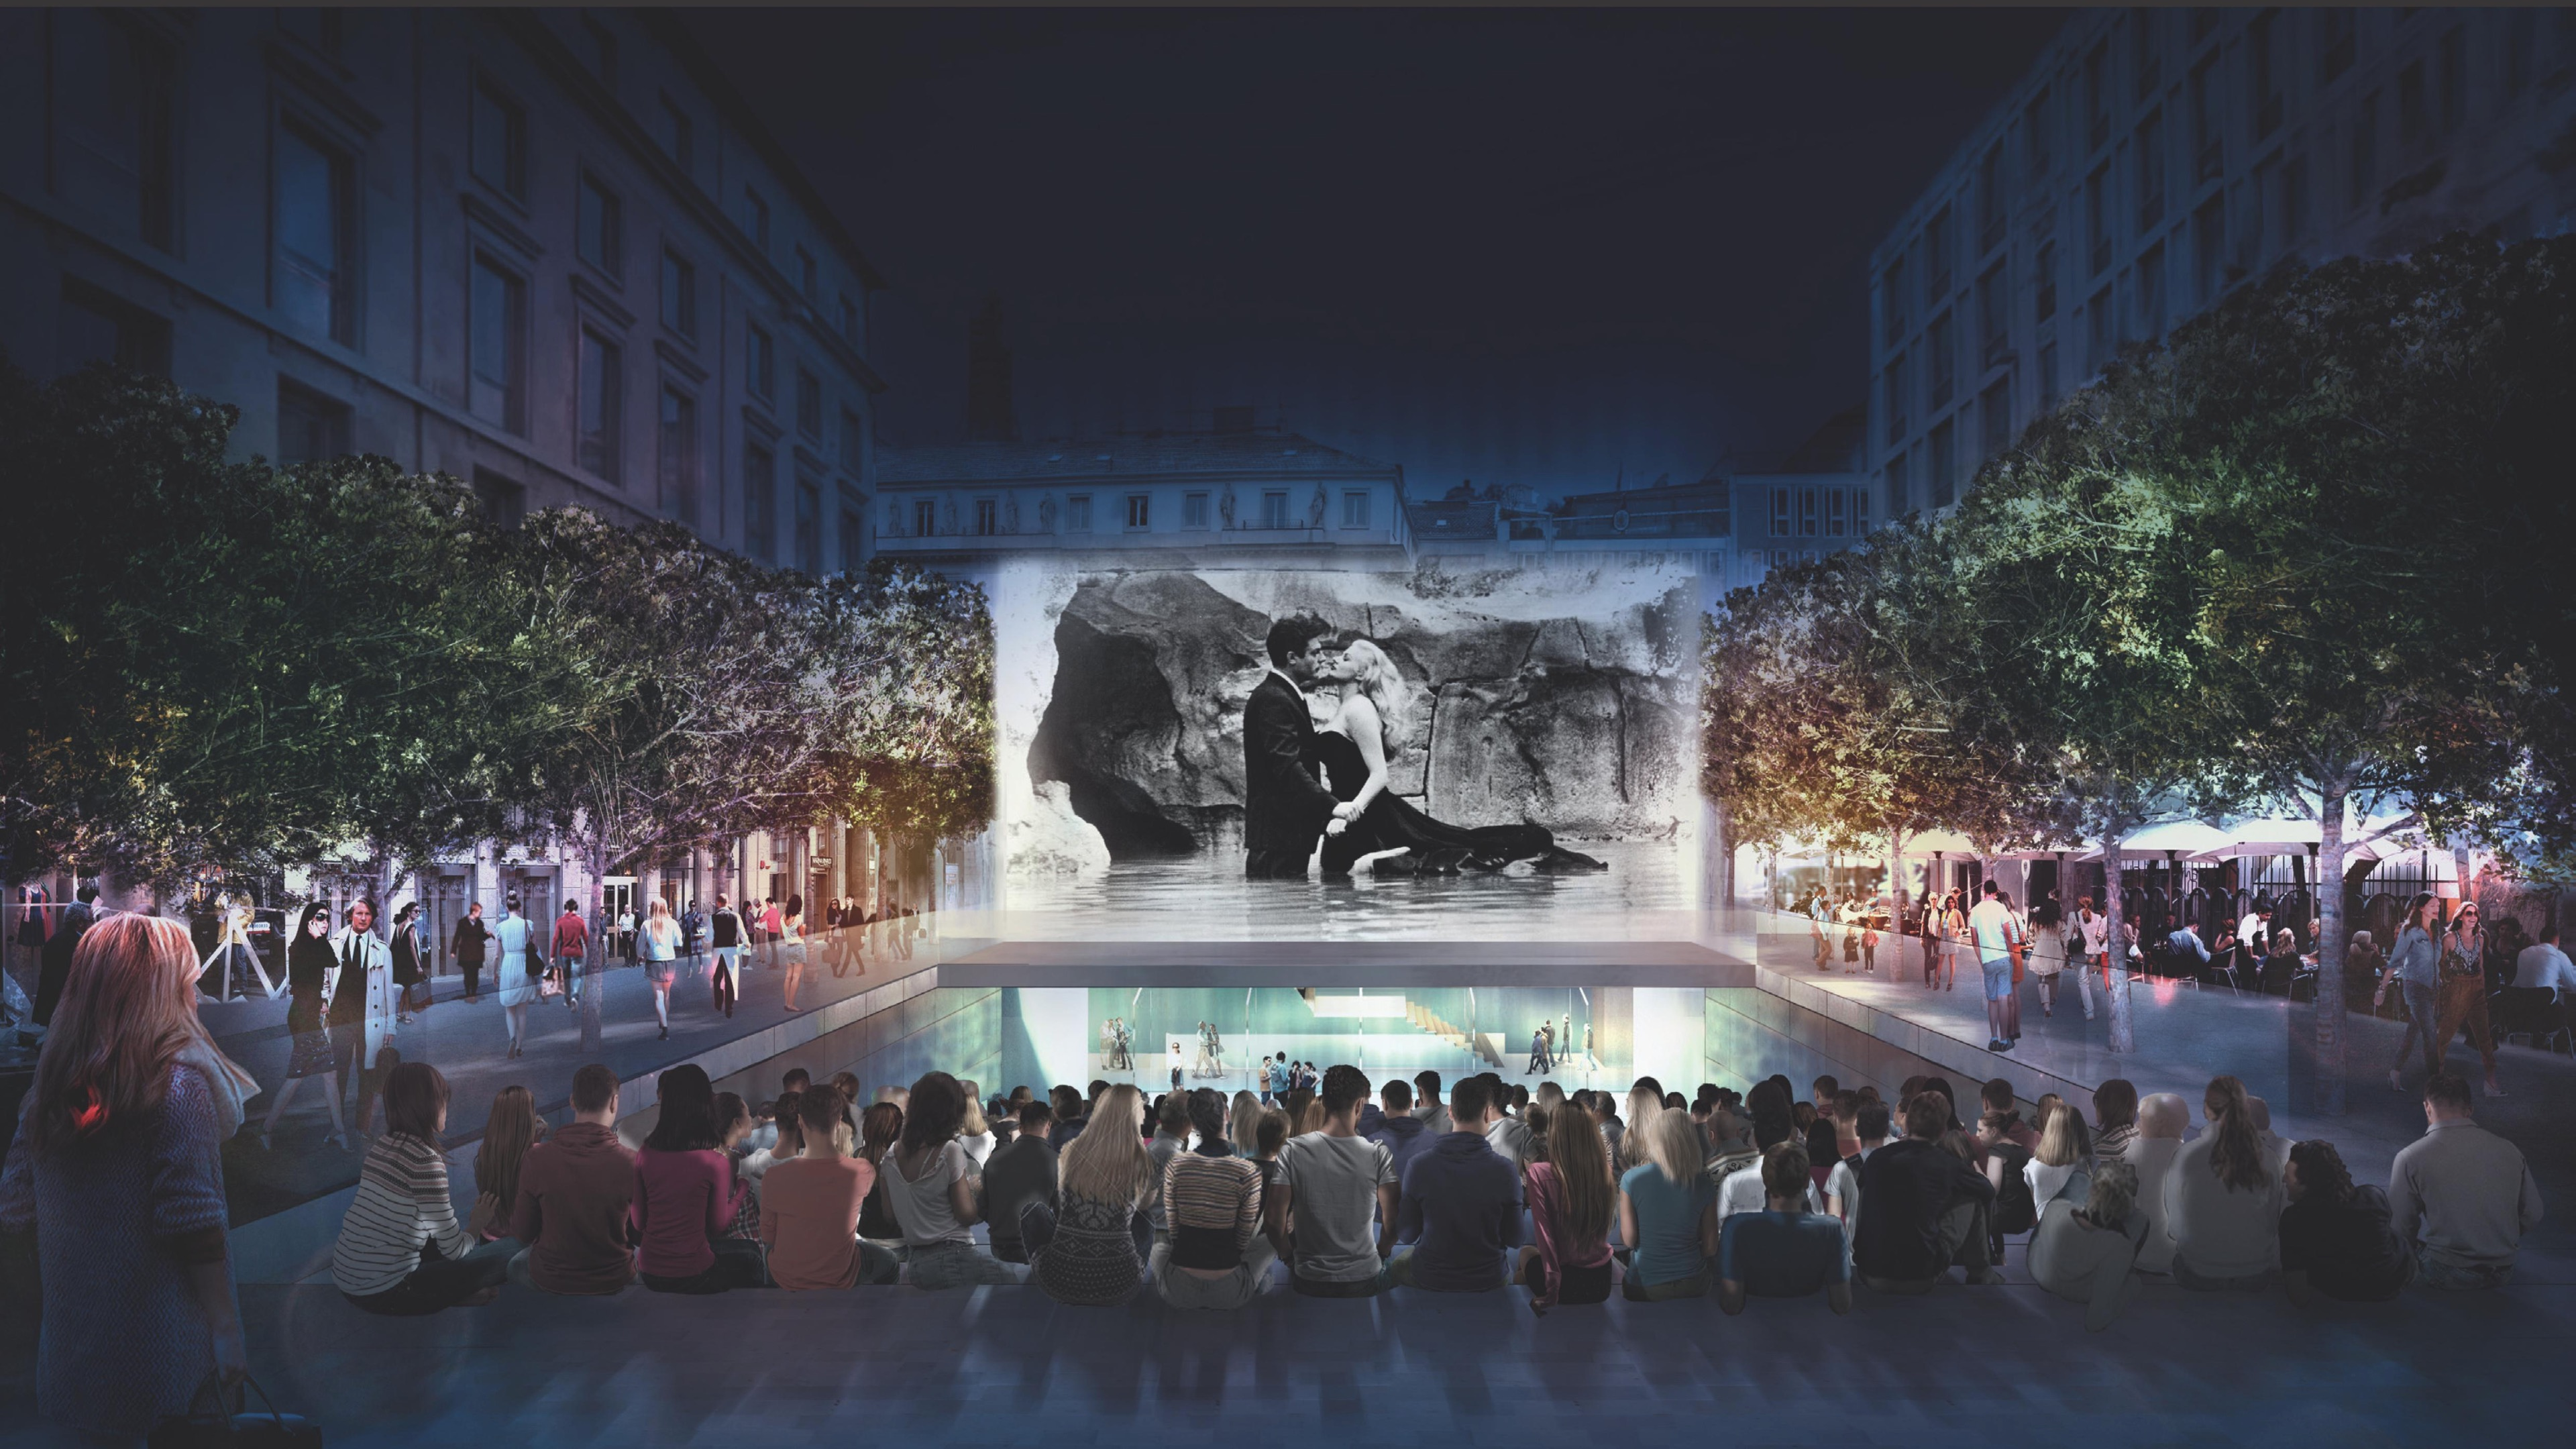 Apple's new outdoor amphitheater and retail store in Milan, Italy set to open on July 26th